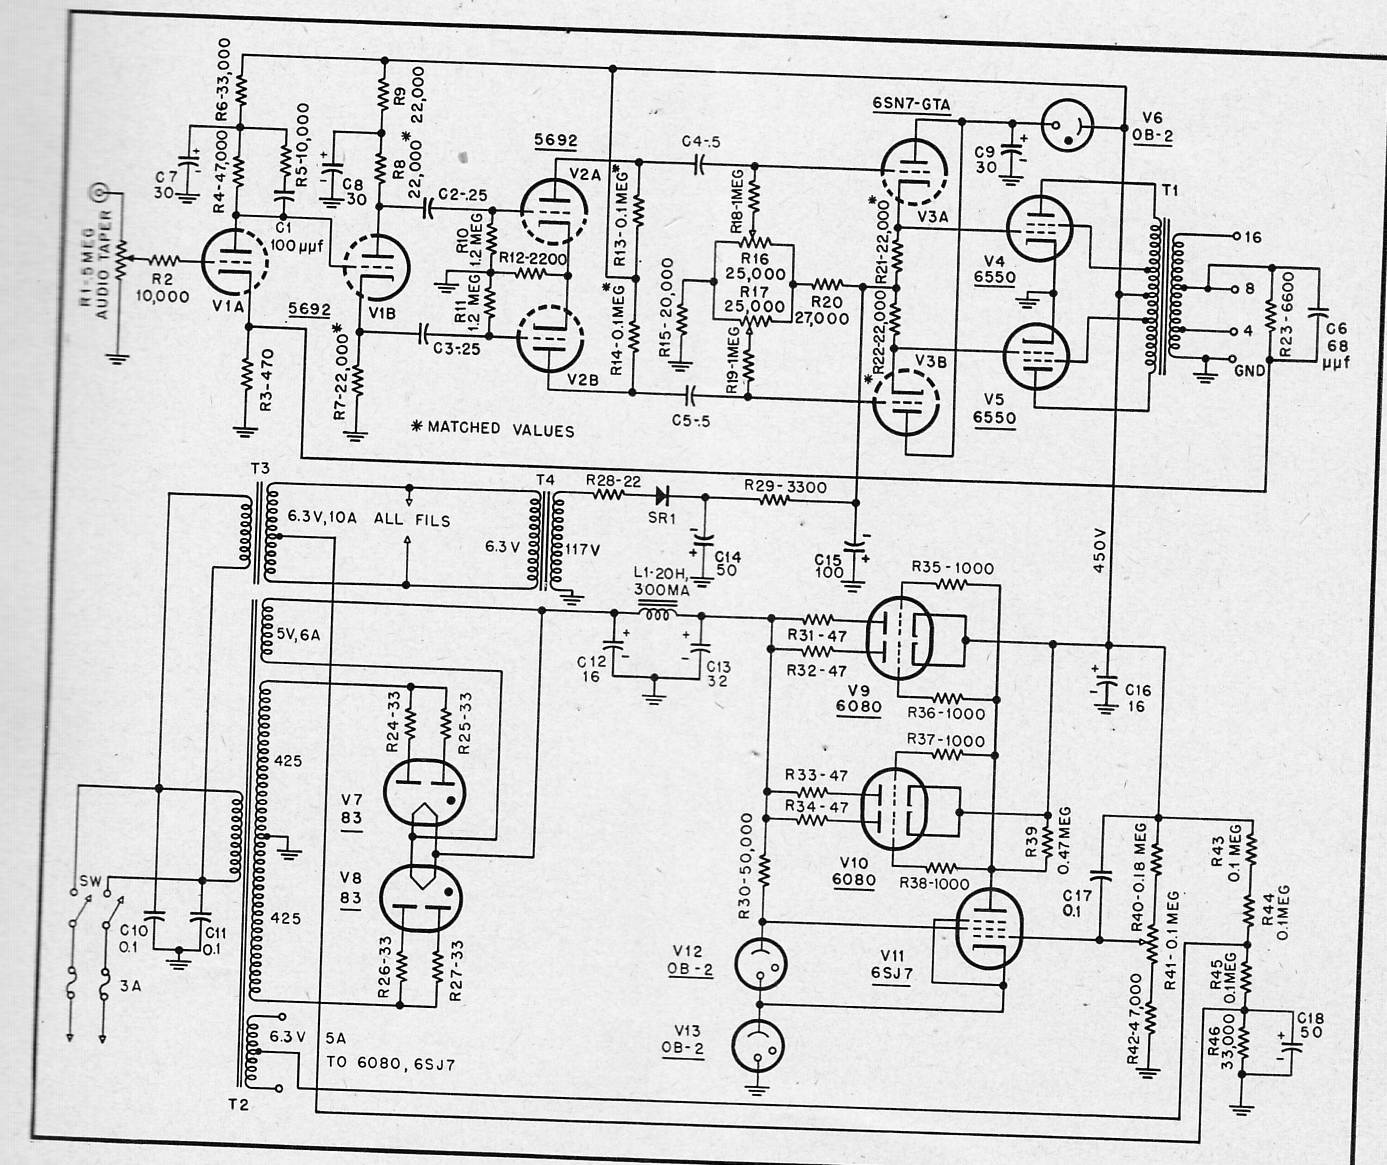 May 2011 Preservation Sound Wiring Diagram Light Switch 7 Diy Electrical Pinterest A 50 Watt Ultralinear Power